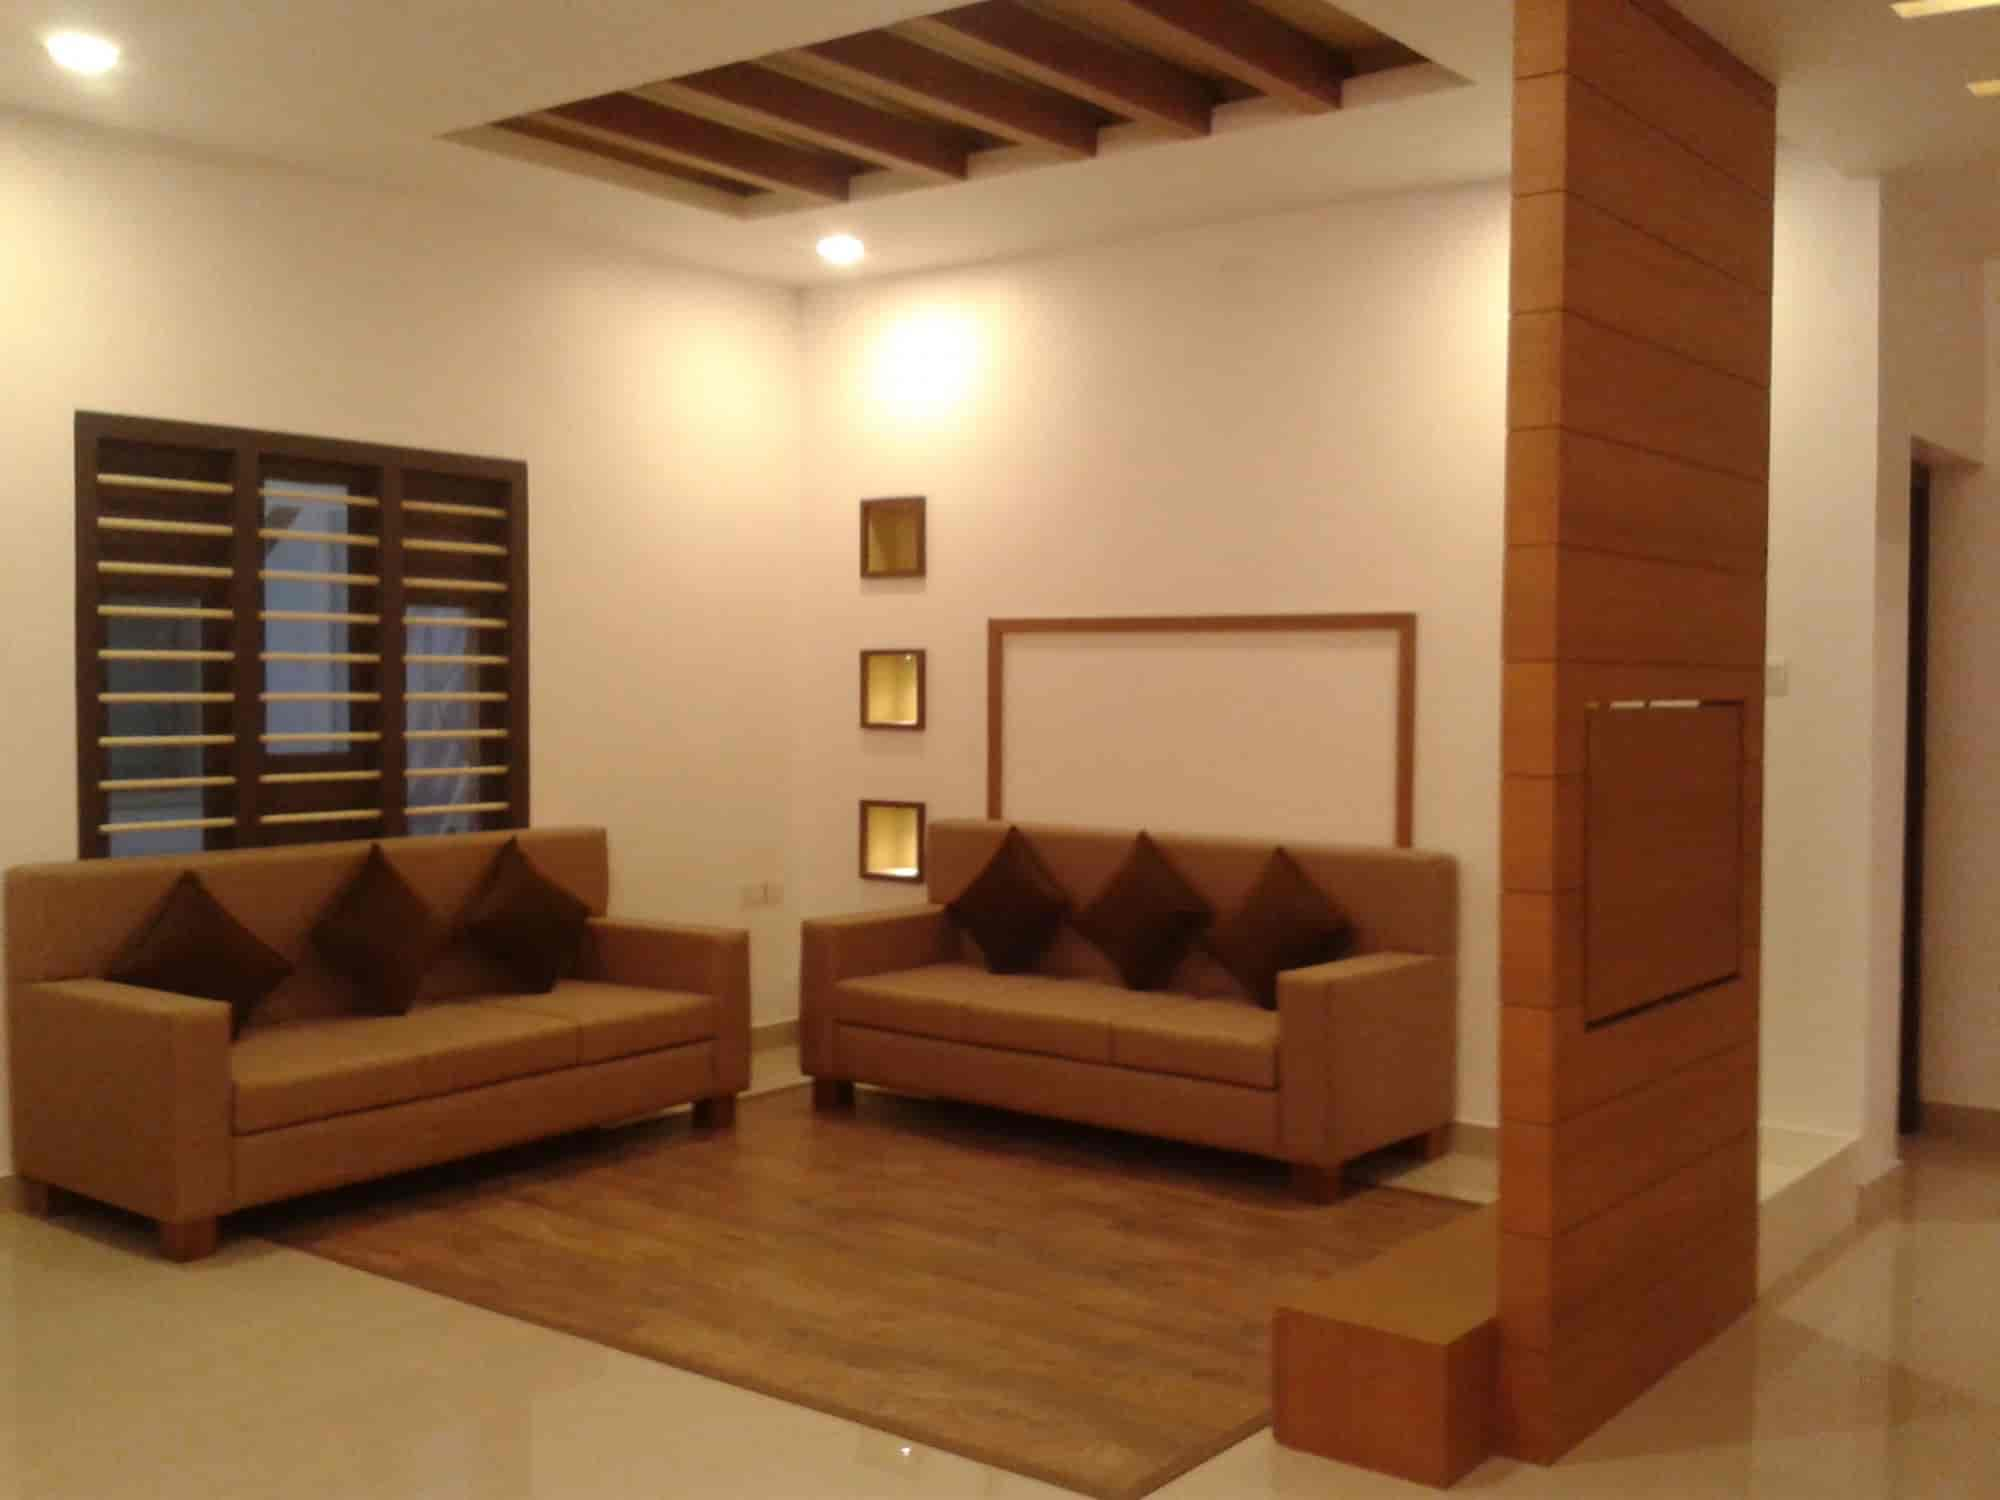 Yellow Wood Nest Home Interiors s Olarikkara Thrissur